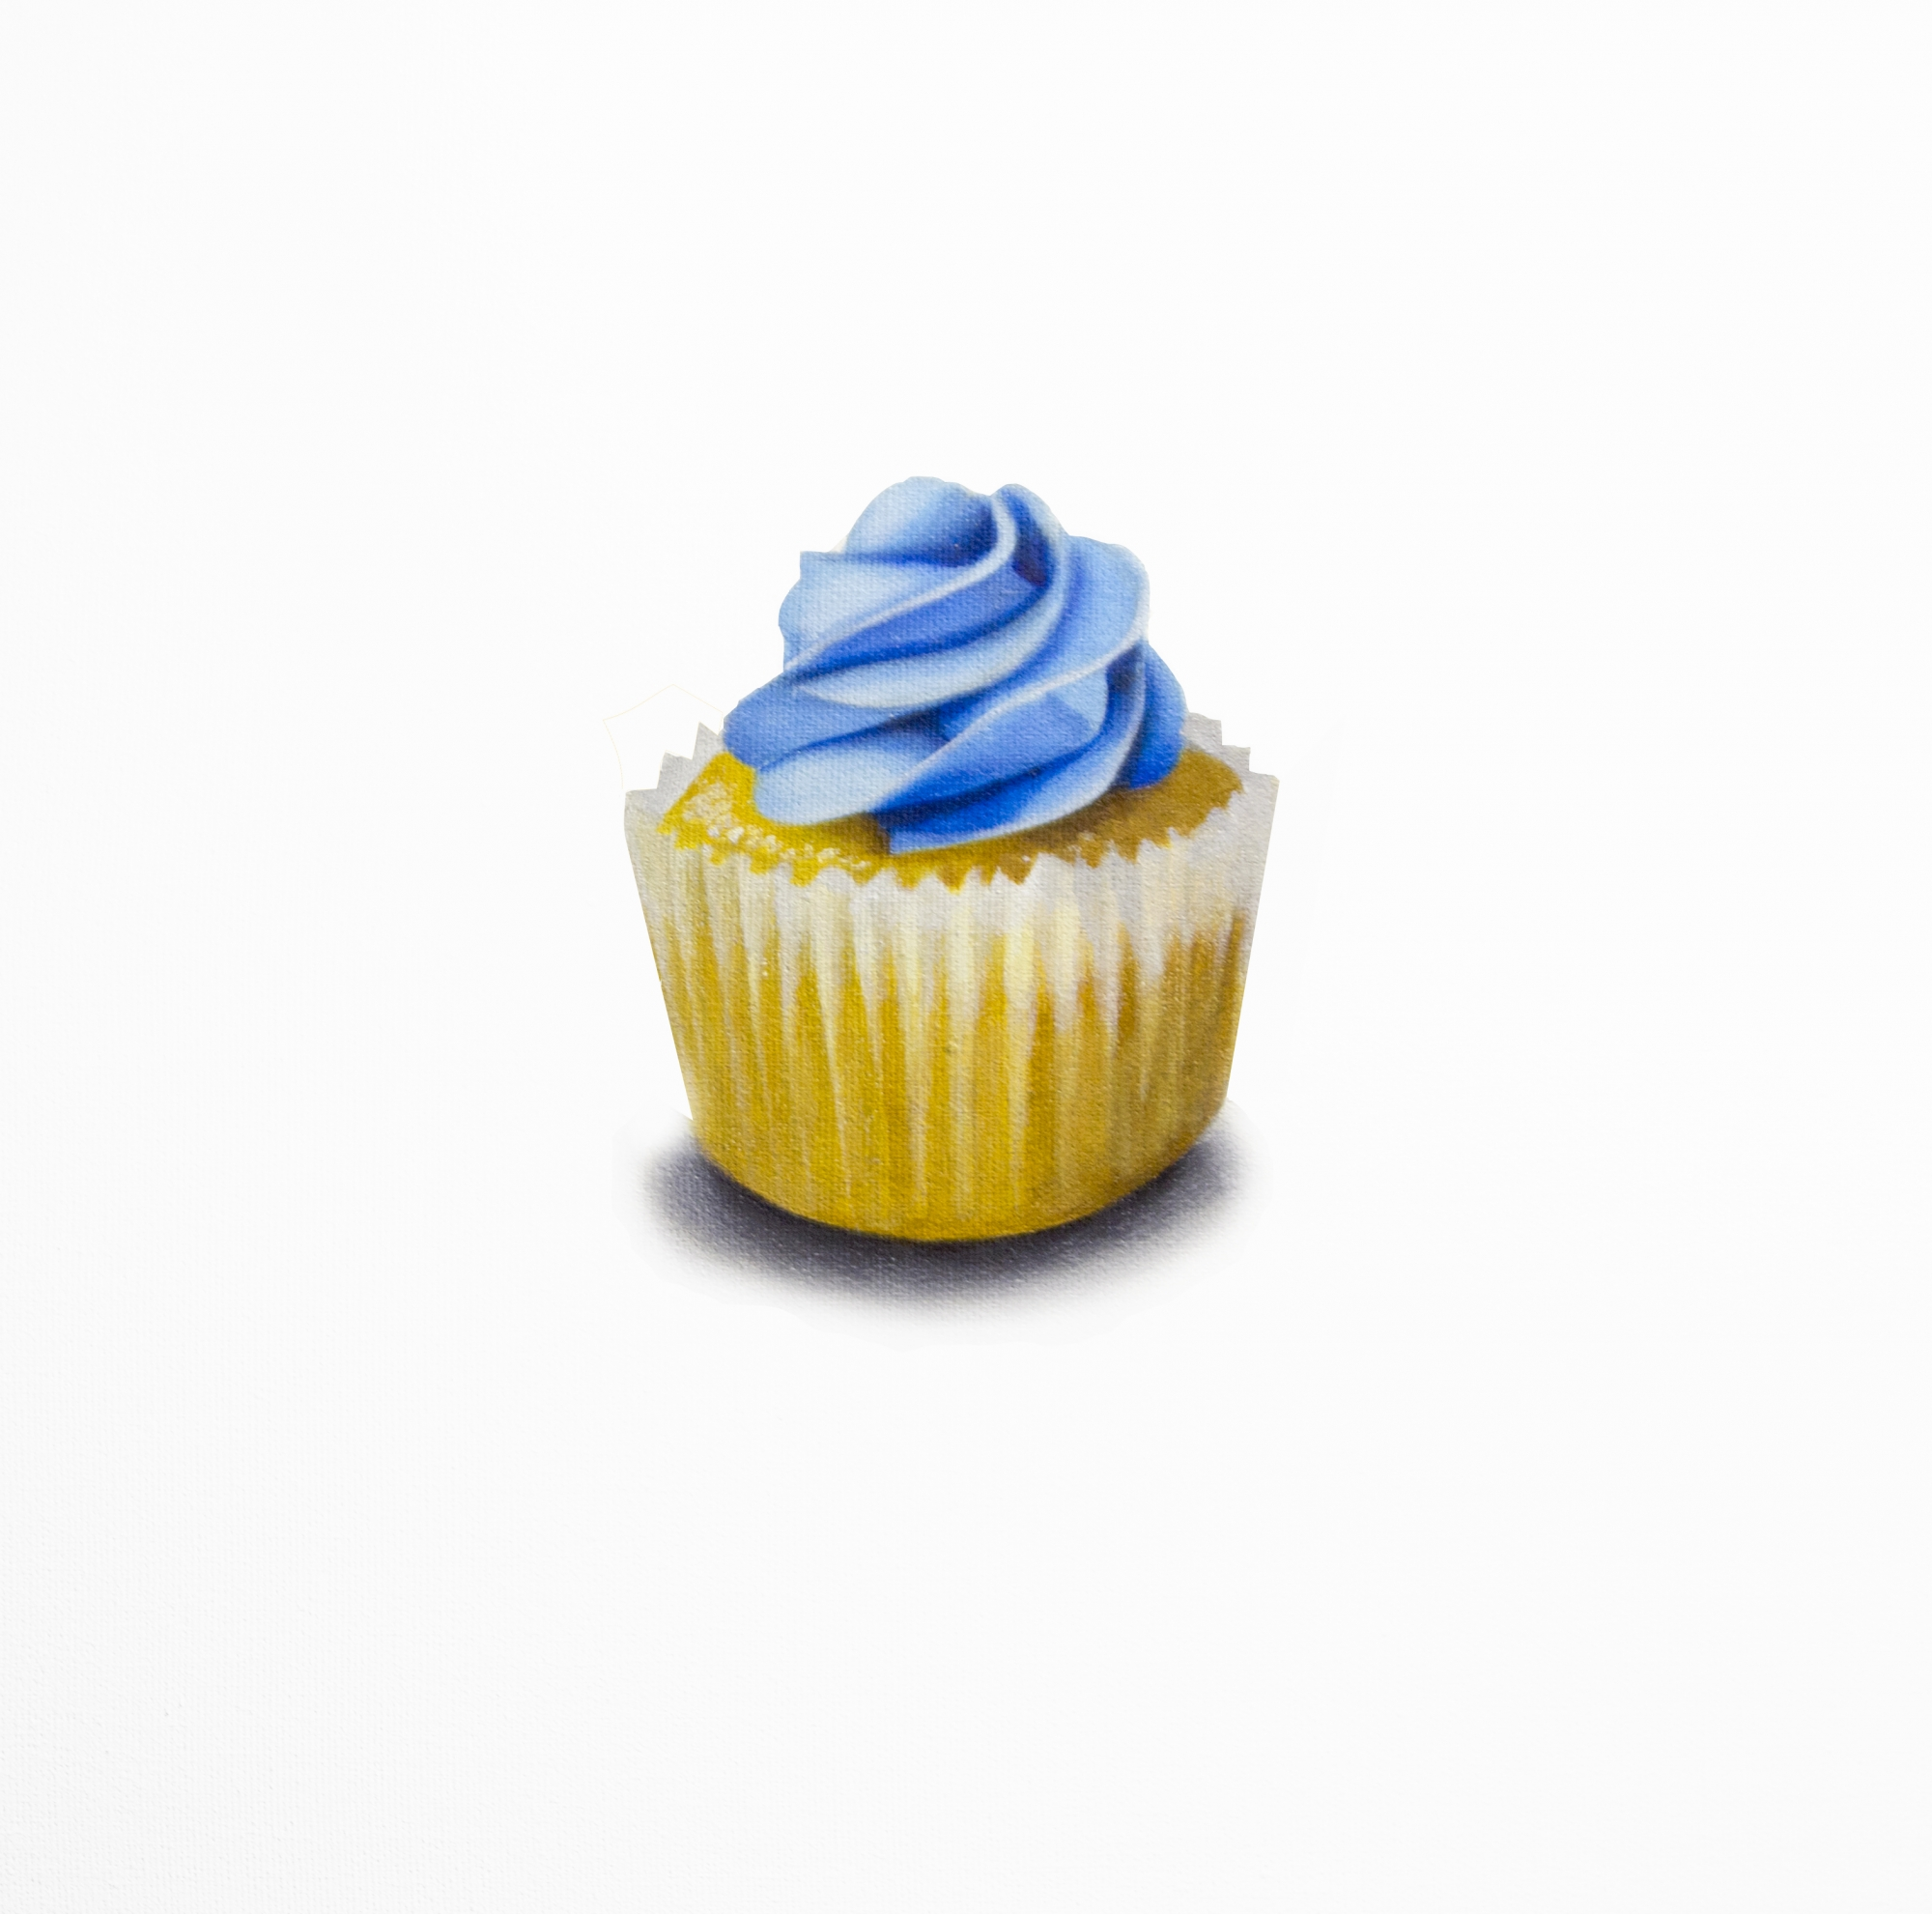 Tasting Room - Blue Cupcake  by Erin Rothstein